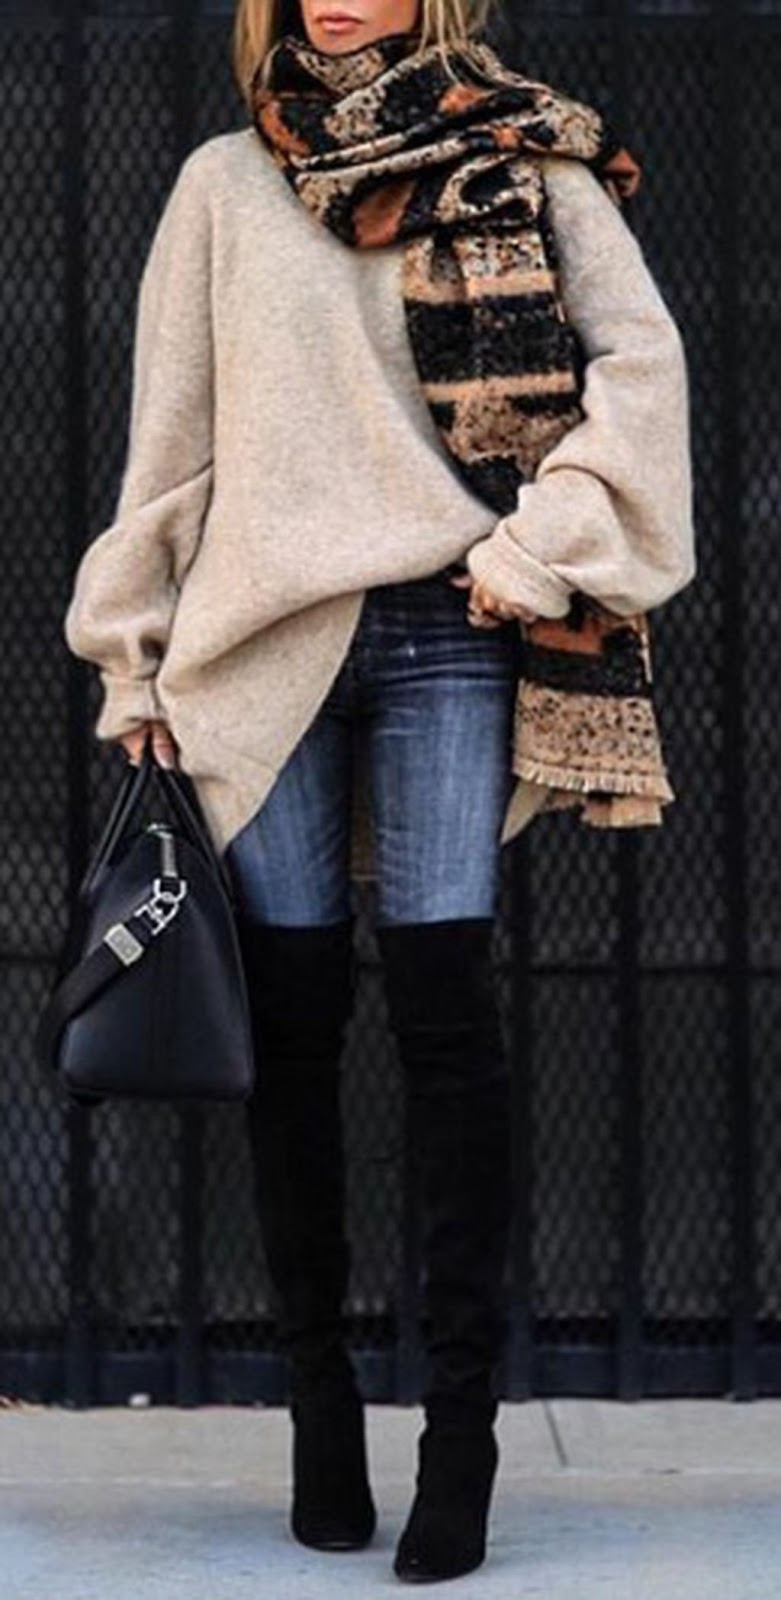 amazing outfit for this winter : scarf + oversized sweater + bag + skinnies + over knee boots